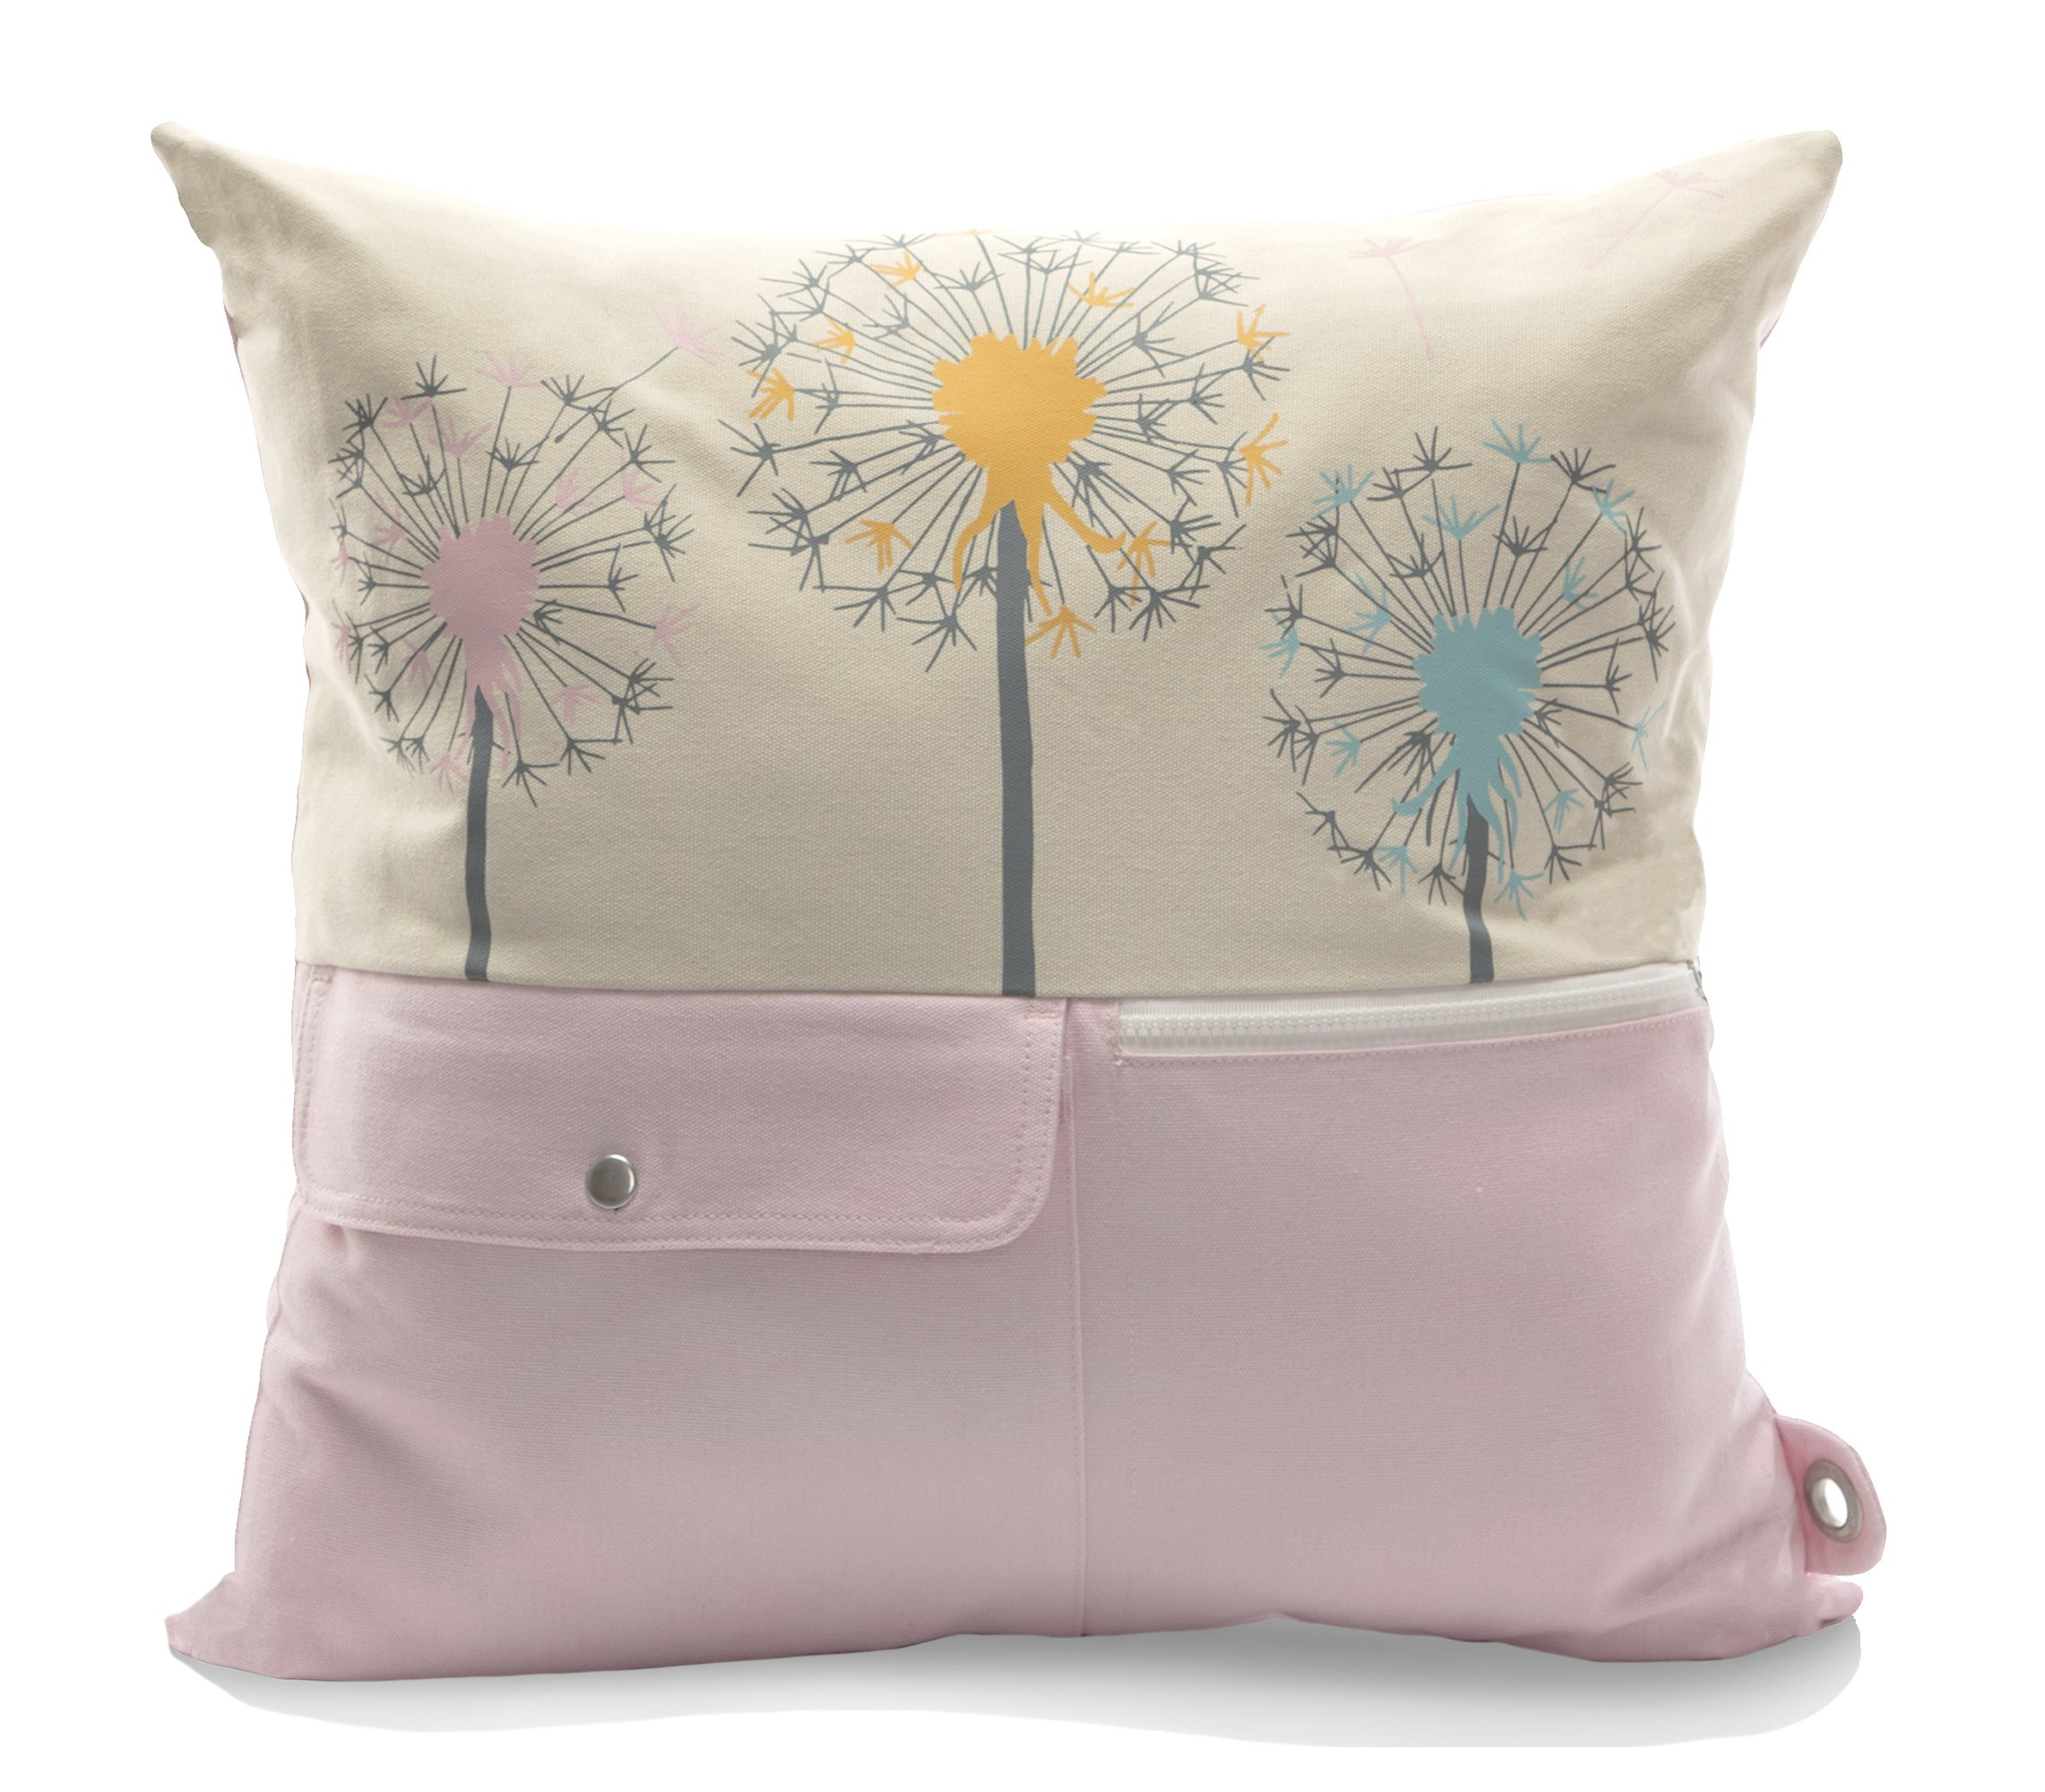 Mimish Naturalist Storage Pillow with Pockets and Exposed Zipper, Medium